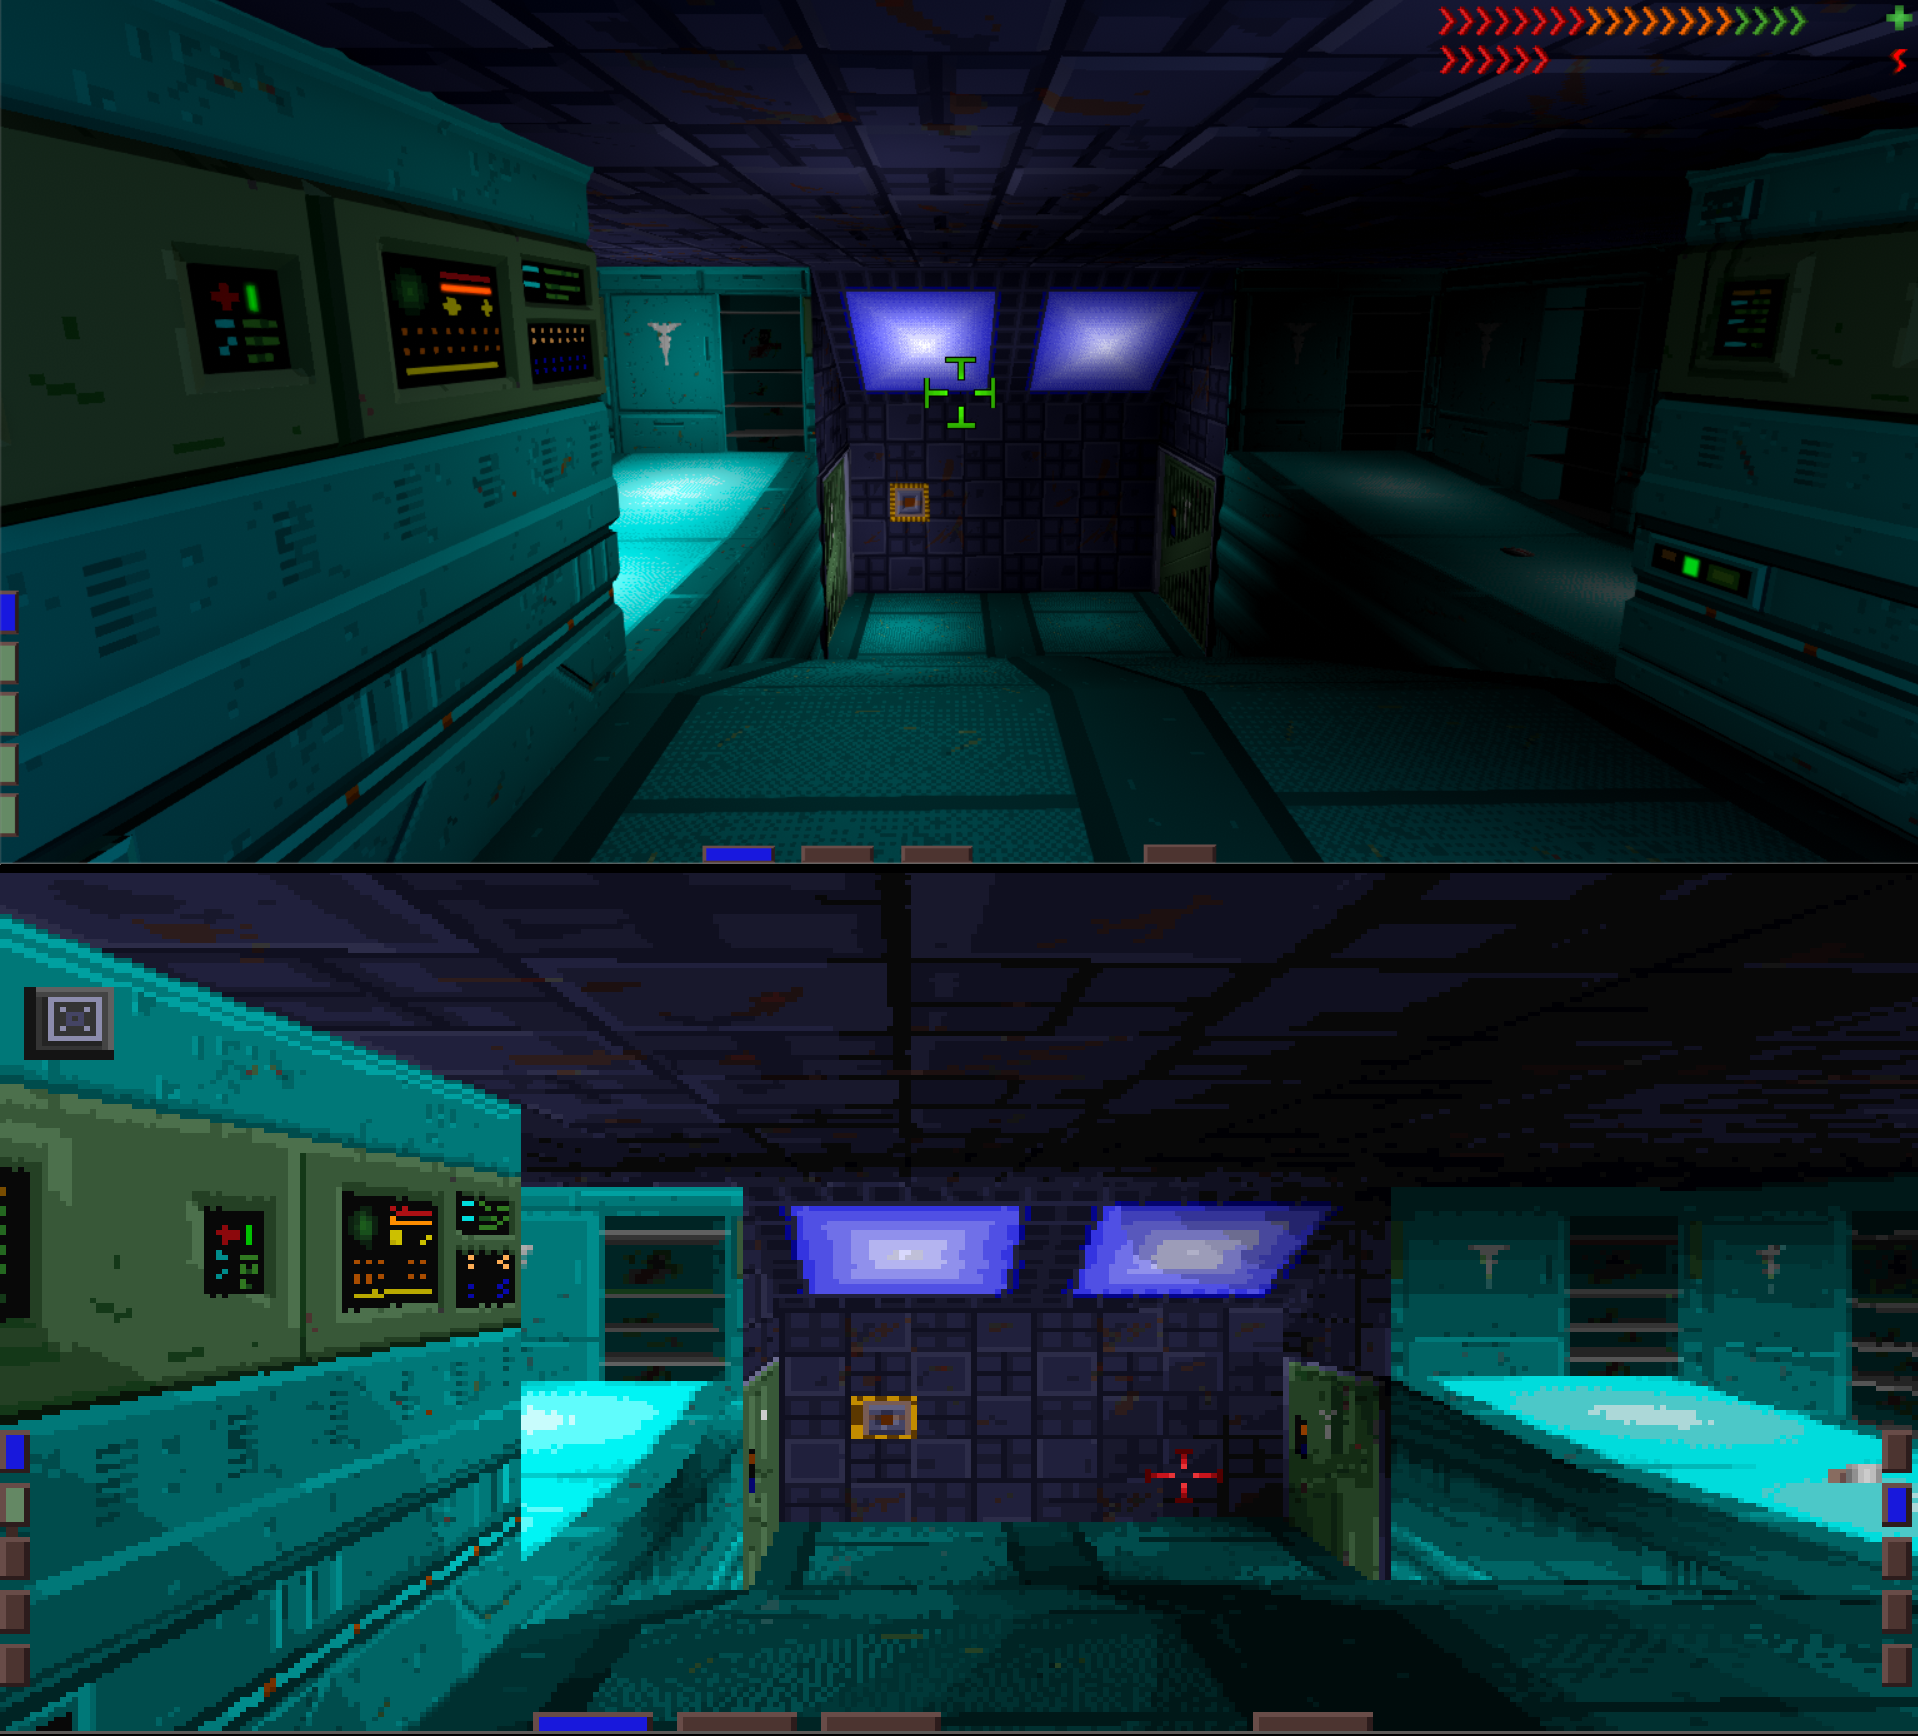 Comparison of Citadel's enhanced geometry versus original game.